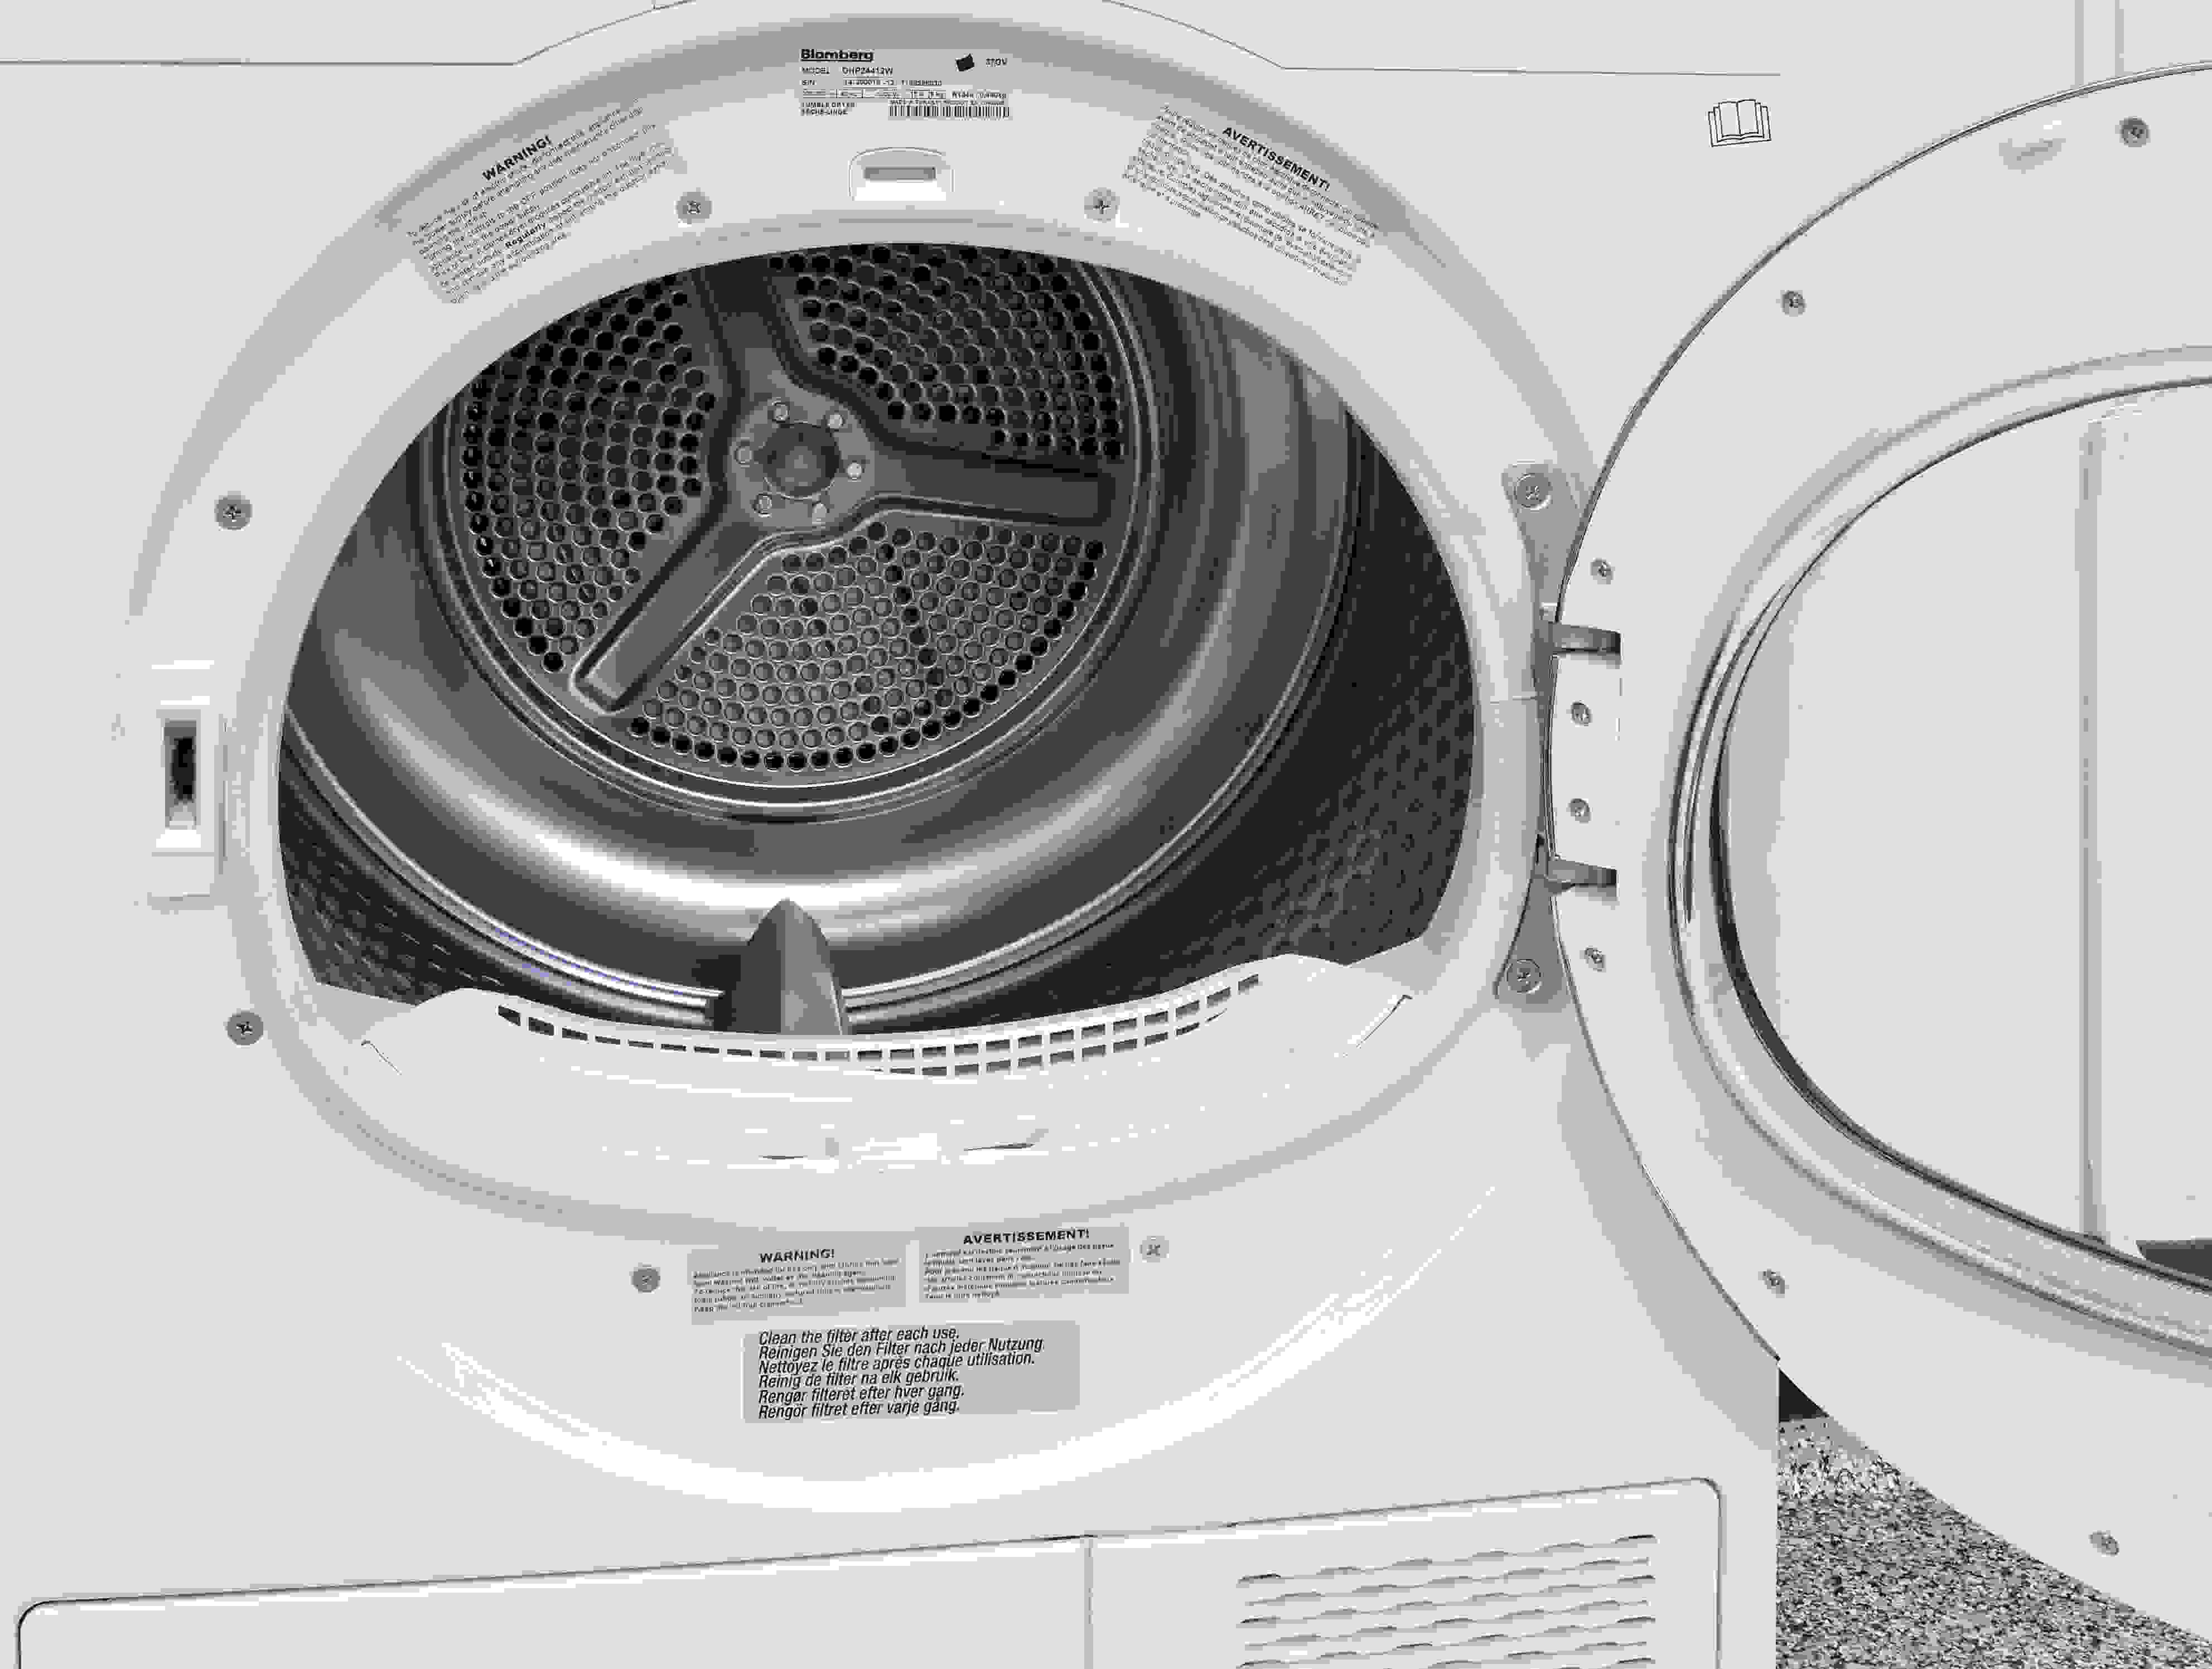 The Blomberg DHP24412W has a stainless drum, but no internal light.